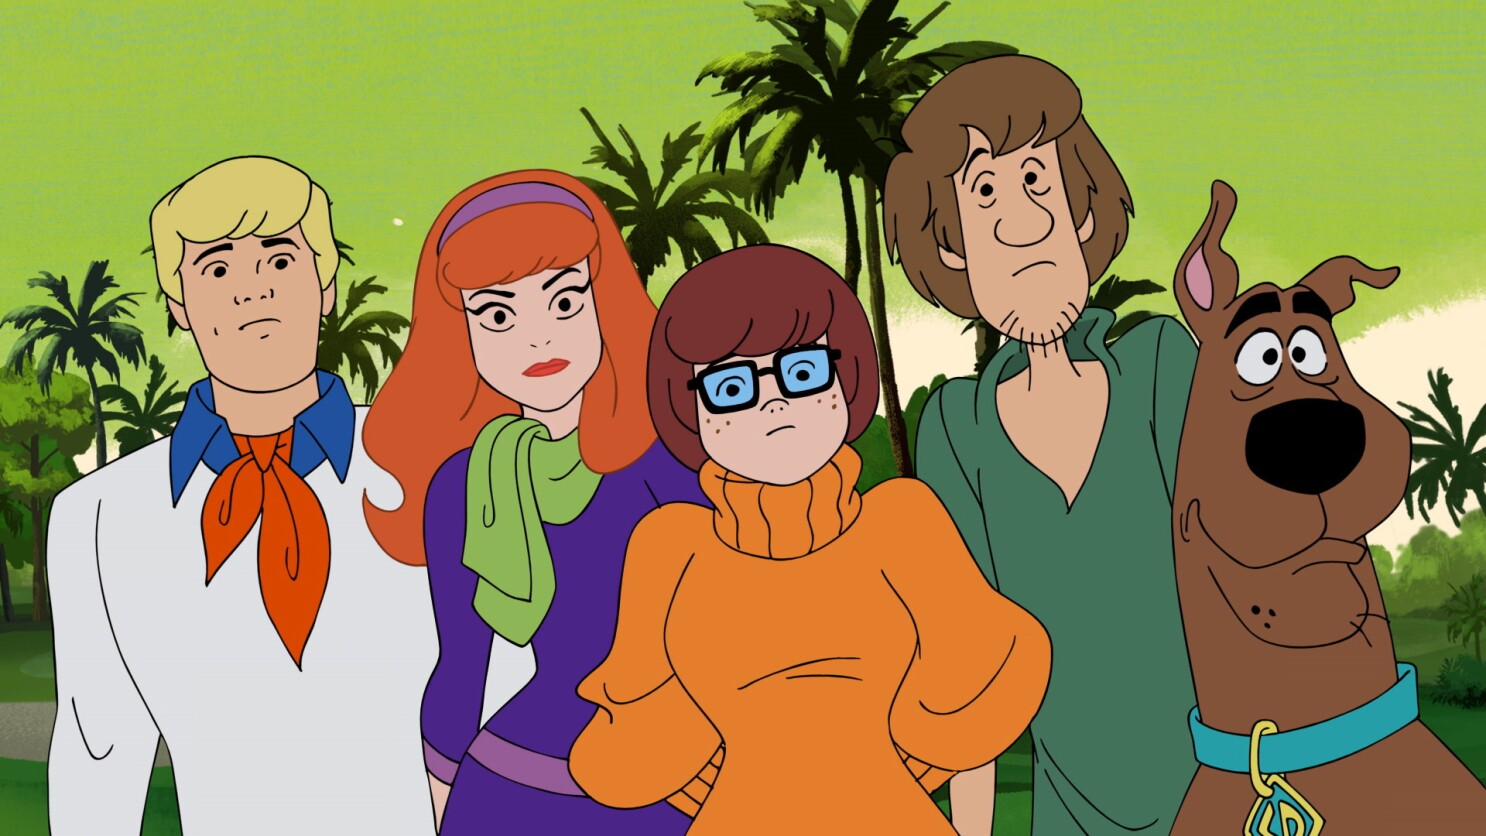 New Scooby Doo Trailer Turns Chris Paul Sia And Wonder Woman Into Cartoons Los Angeles Times